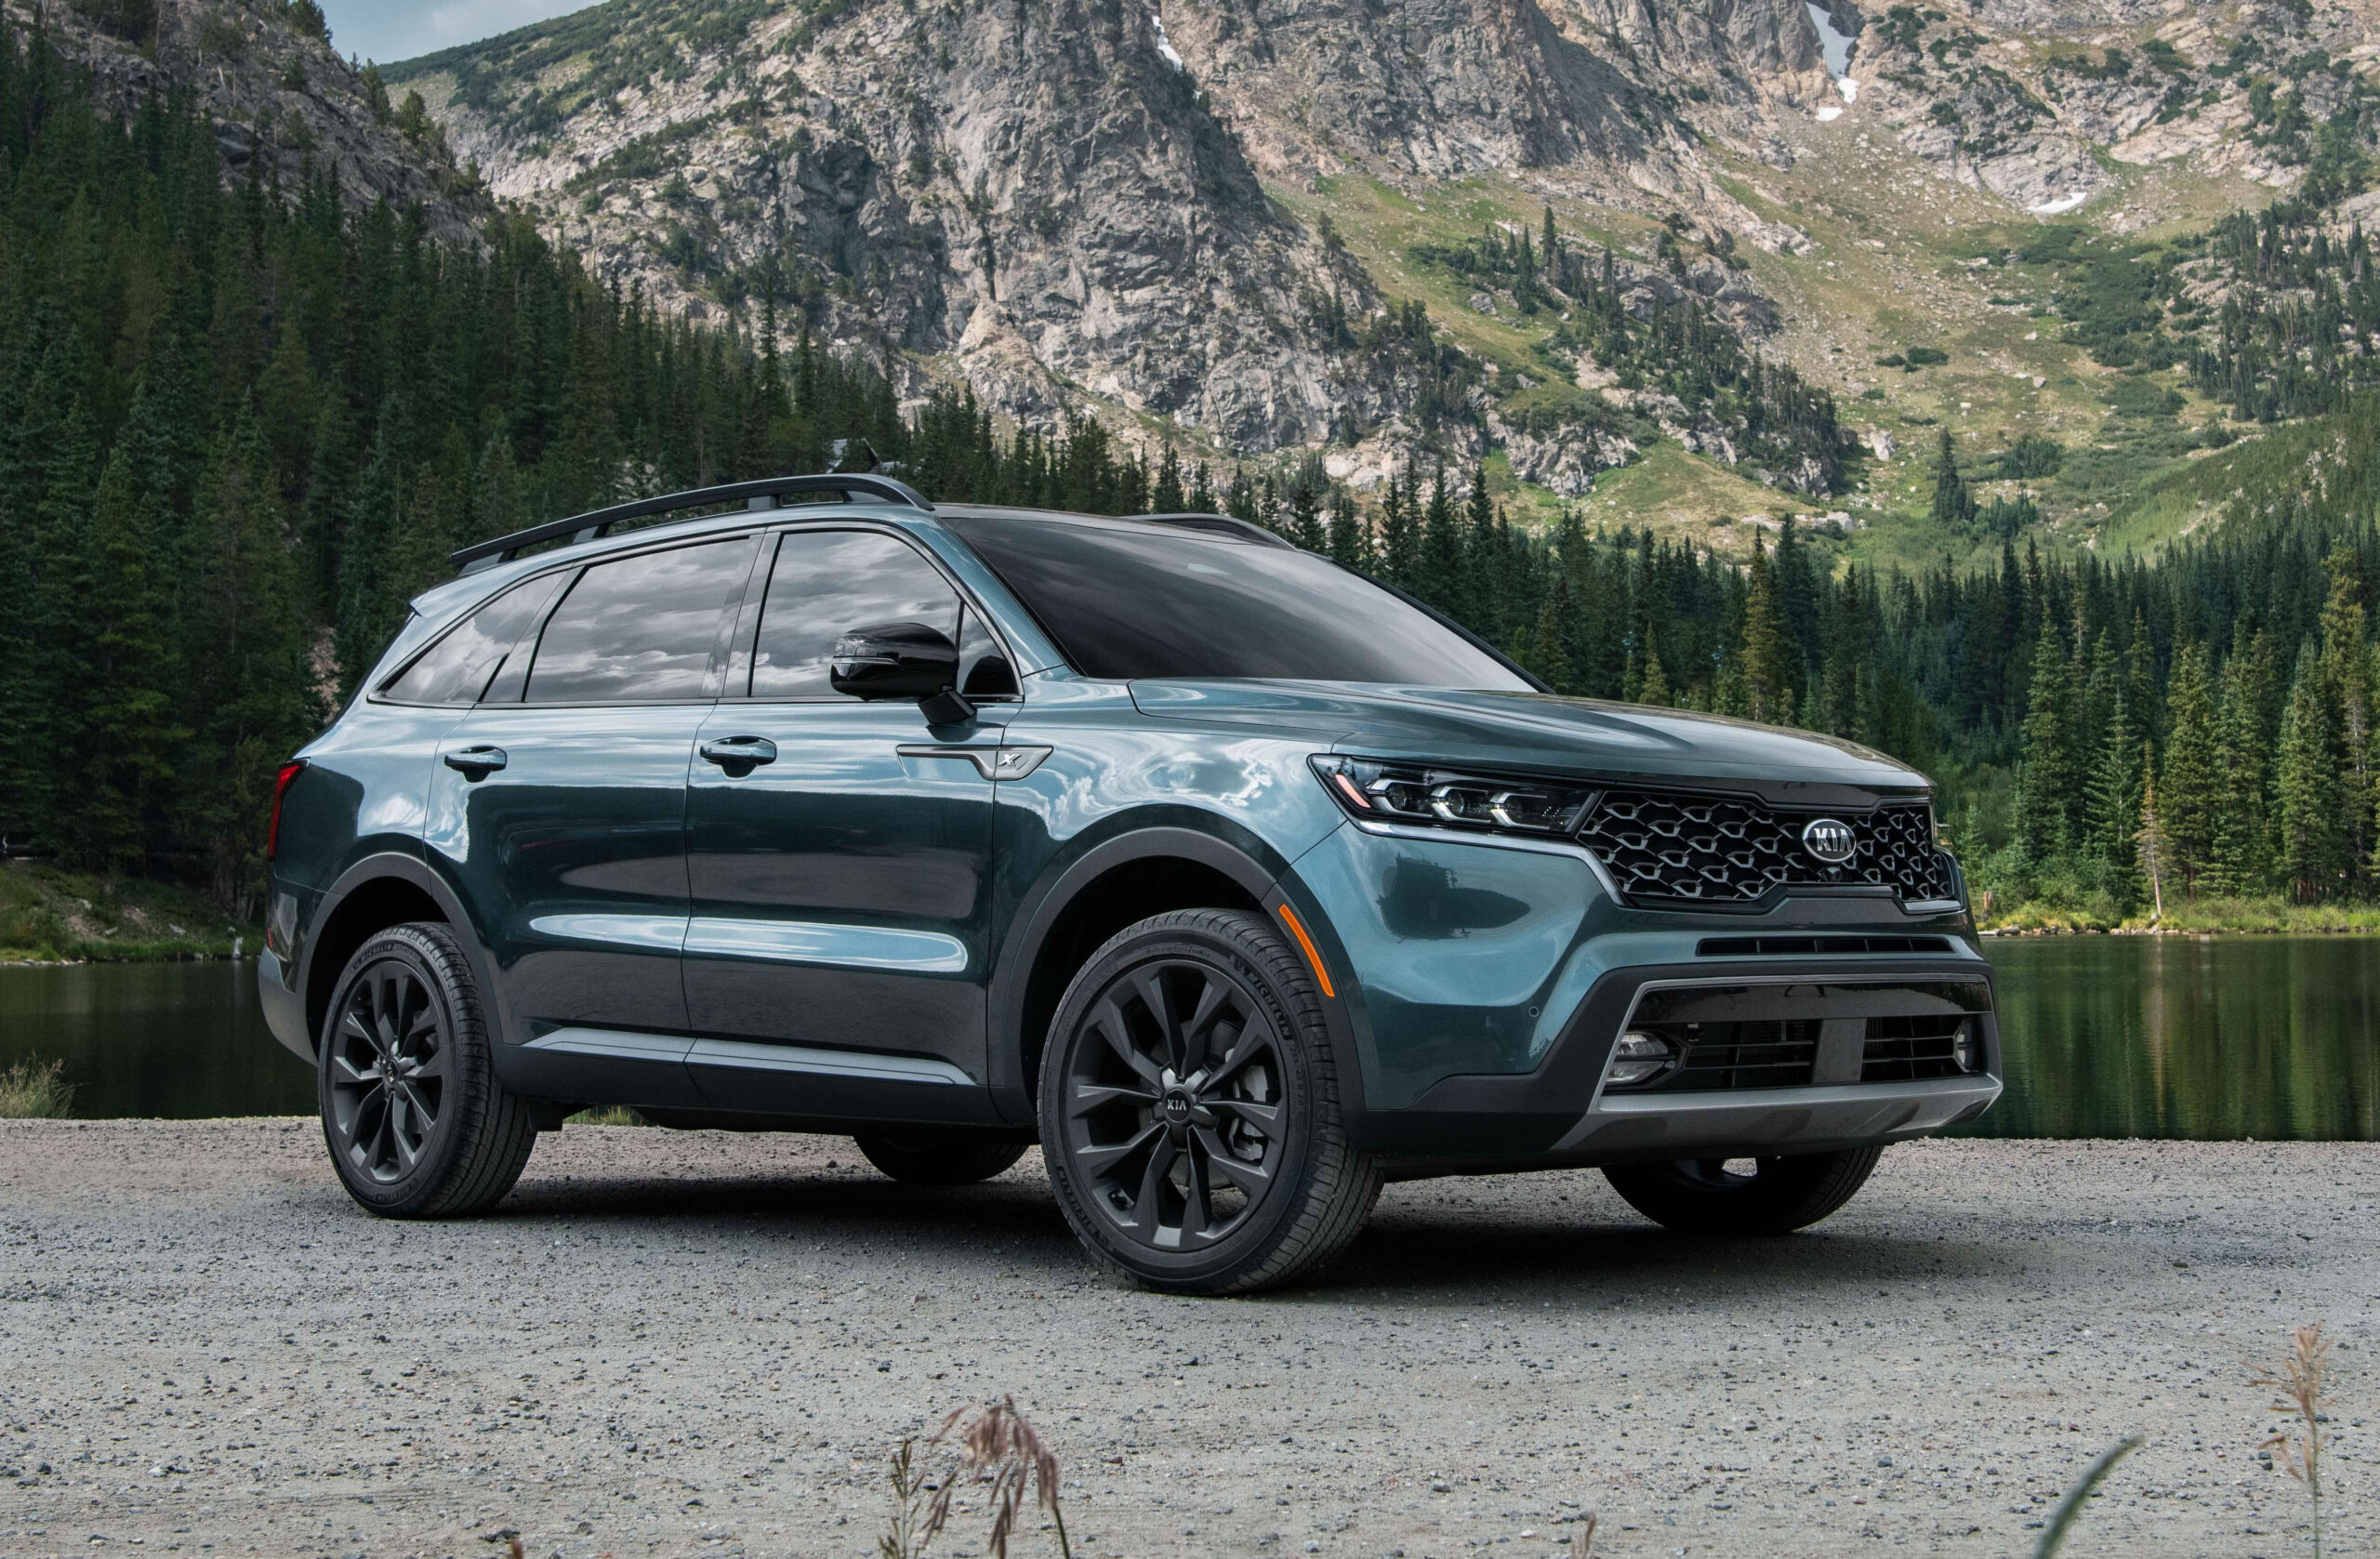 Award-winning vehicle recognized for safety and family convenience features. Sorento selected from more than 50 new model vehicles.